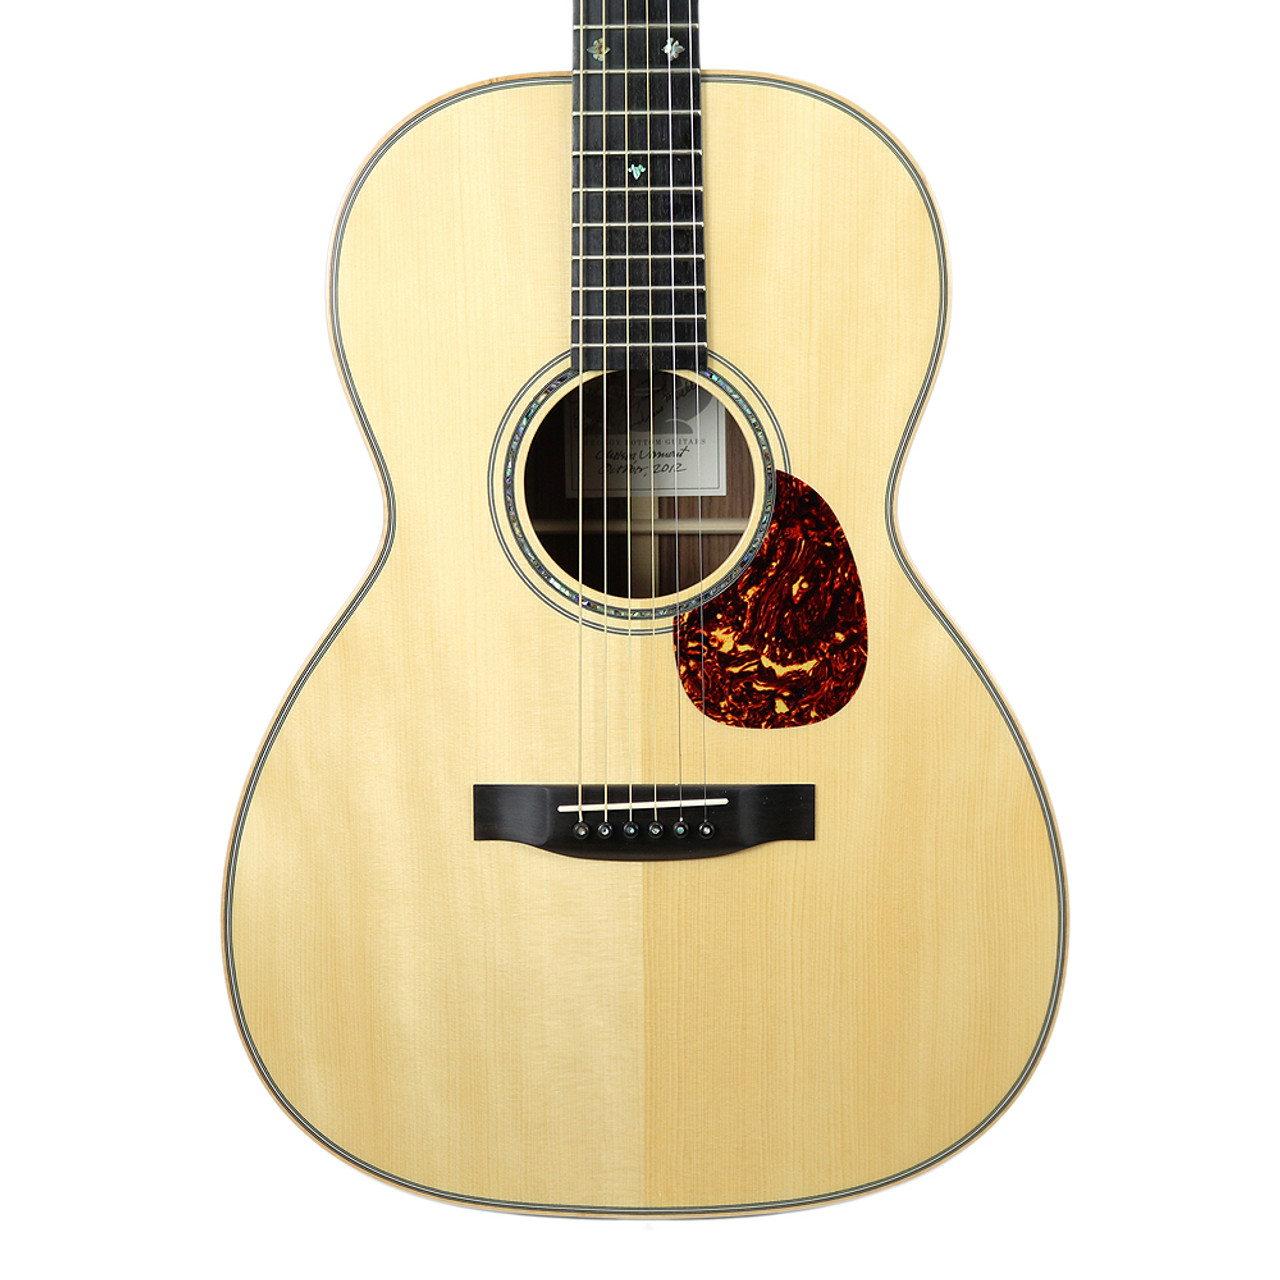 Used 2012 Froggy Bottom H 12 Deluxe Grand Concert Acoustic Guitar